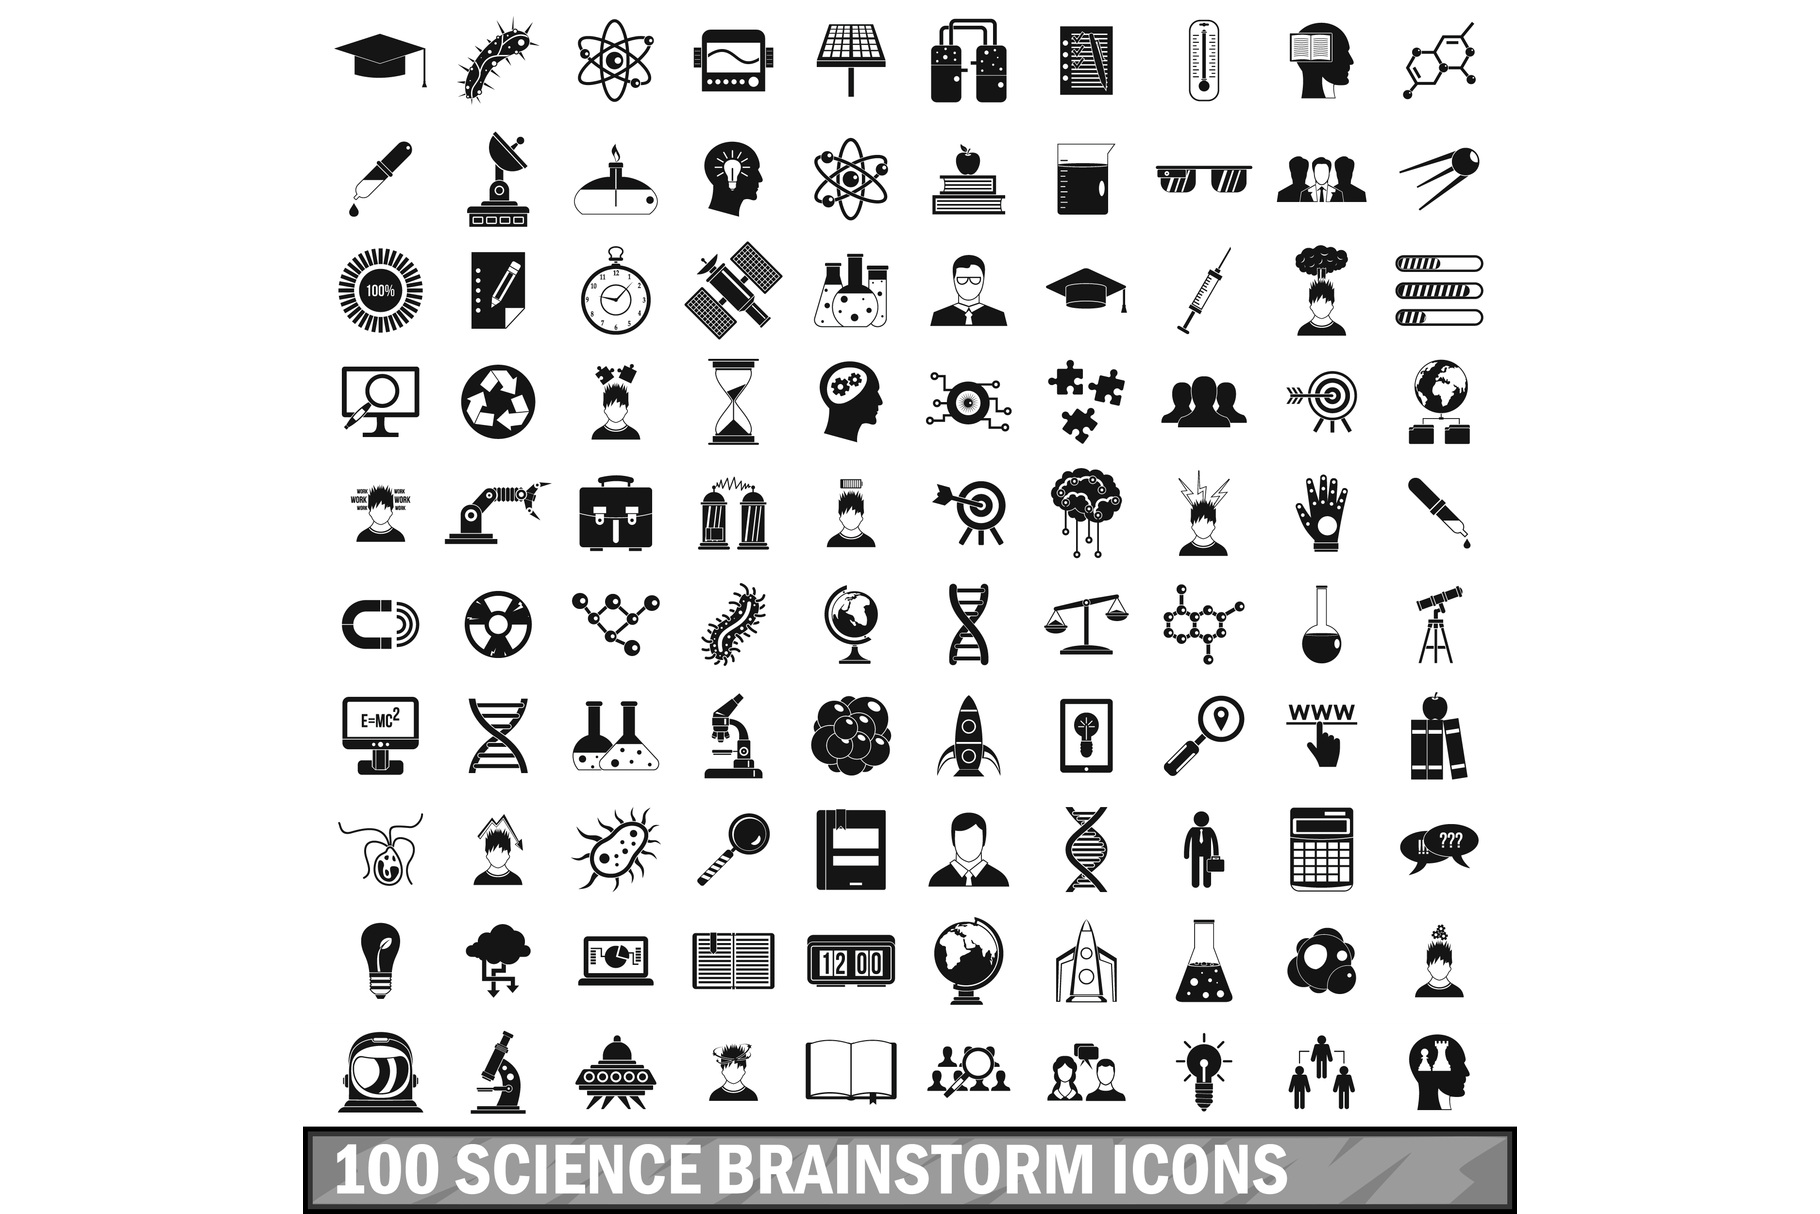 100 science brainstorm icons set, simple style example image 1